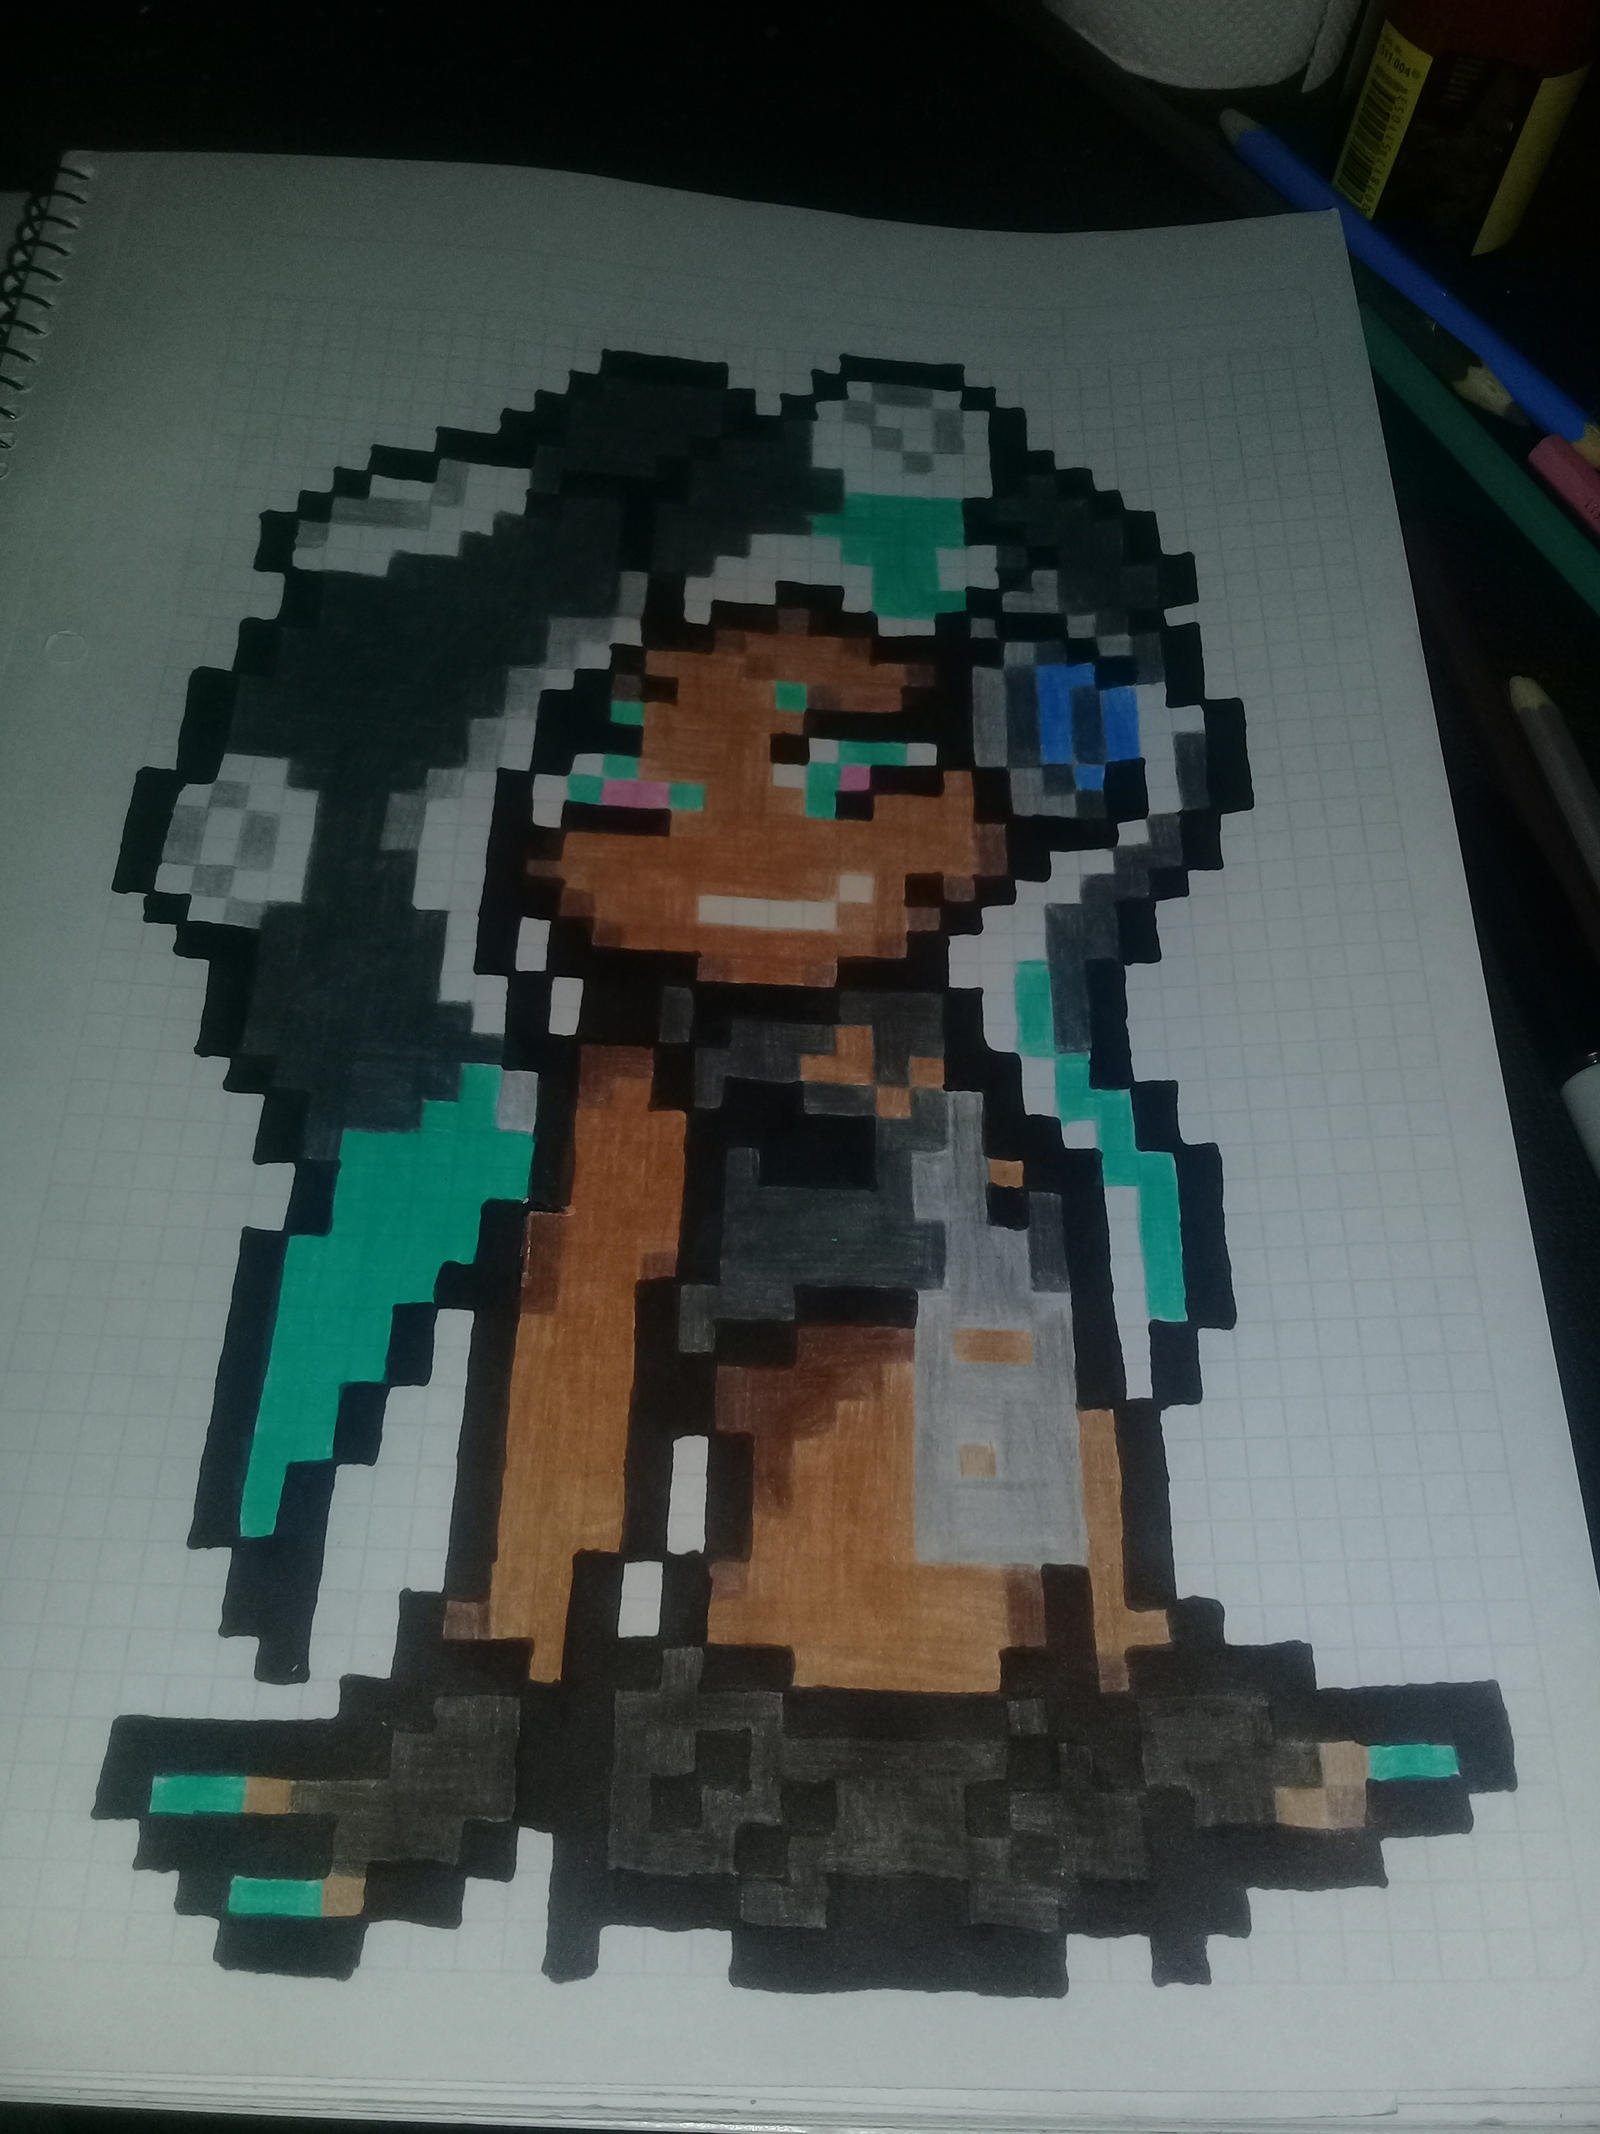 Pixel Art Marina Splatoon 2 By Ferminbackstap On Deviantart